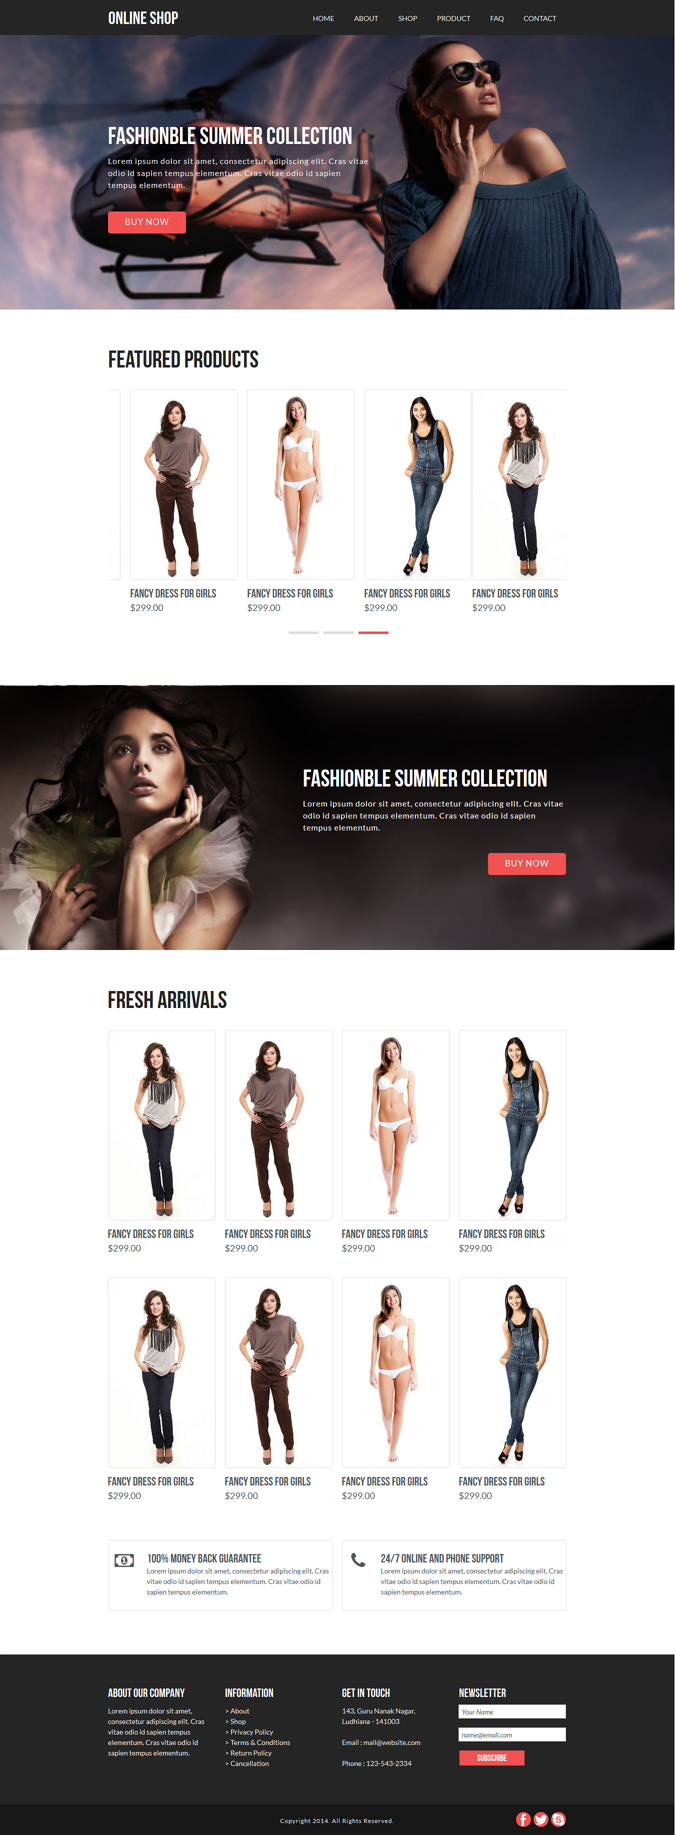 Online Shop eCommerce Muse Template